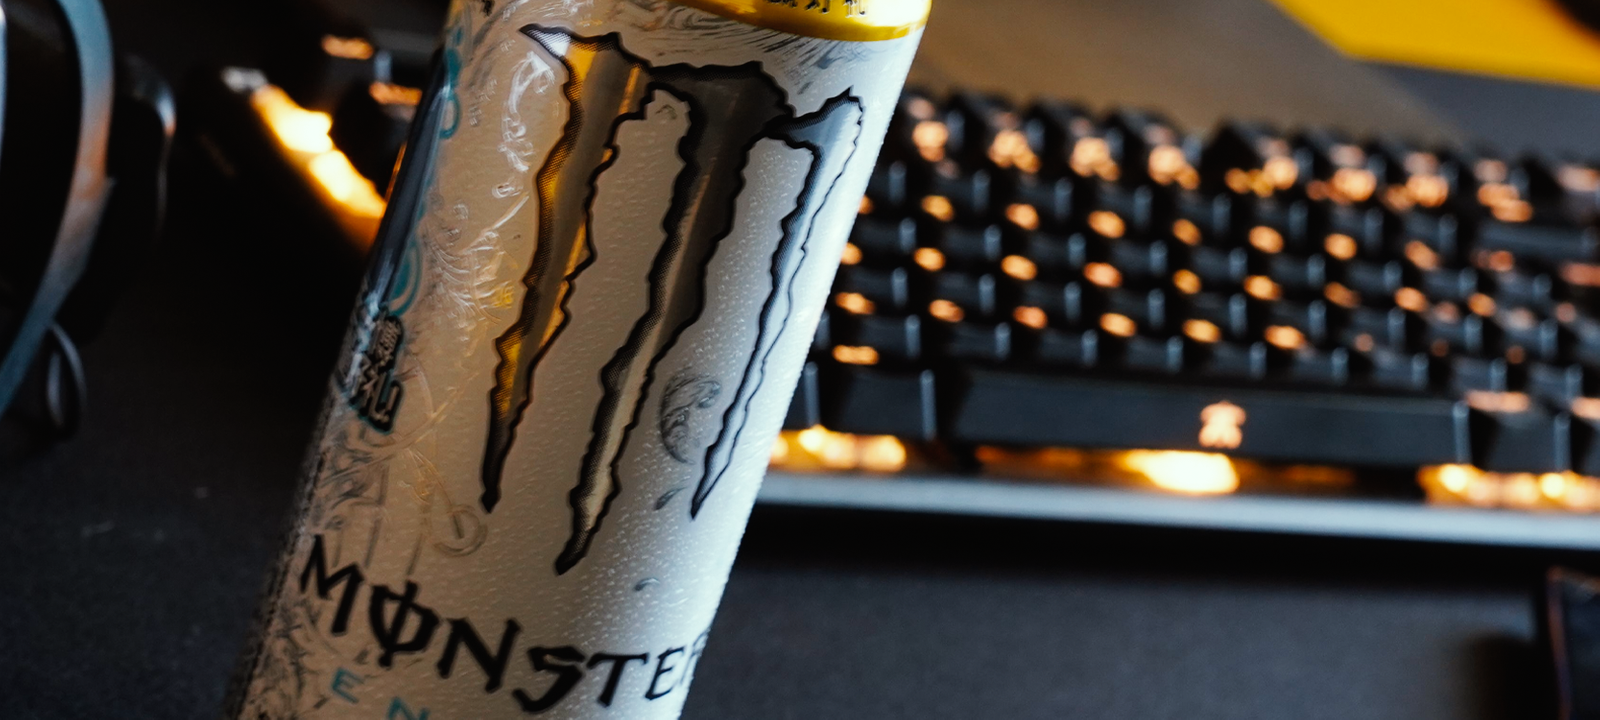 Can of monster by a Fnatic keyboard